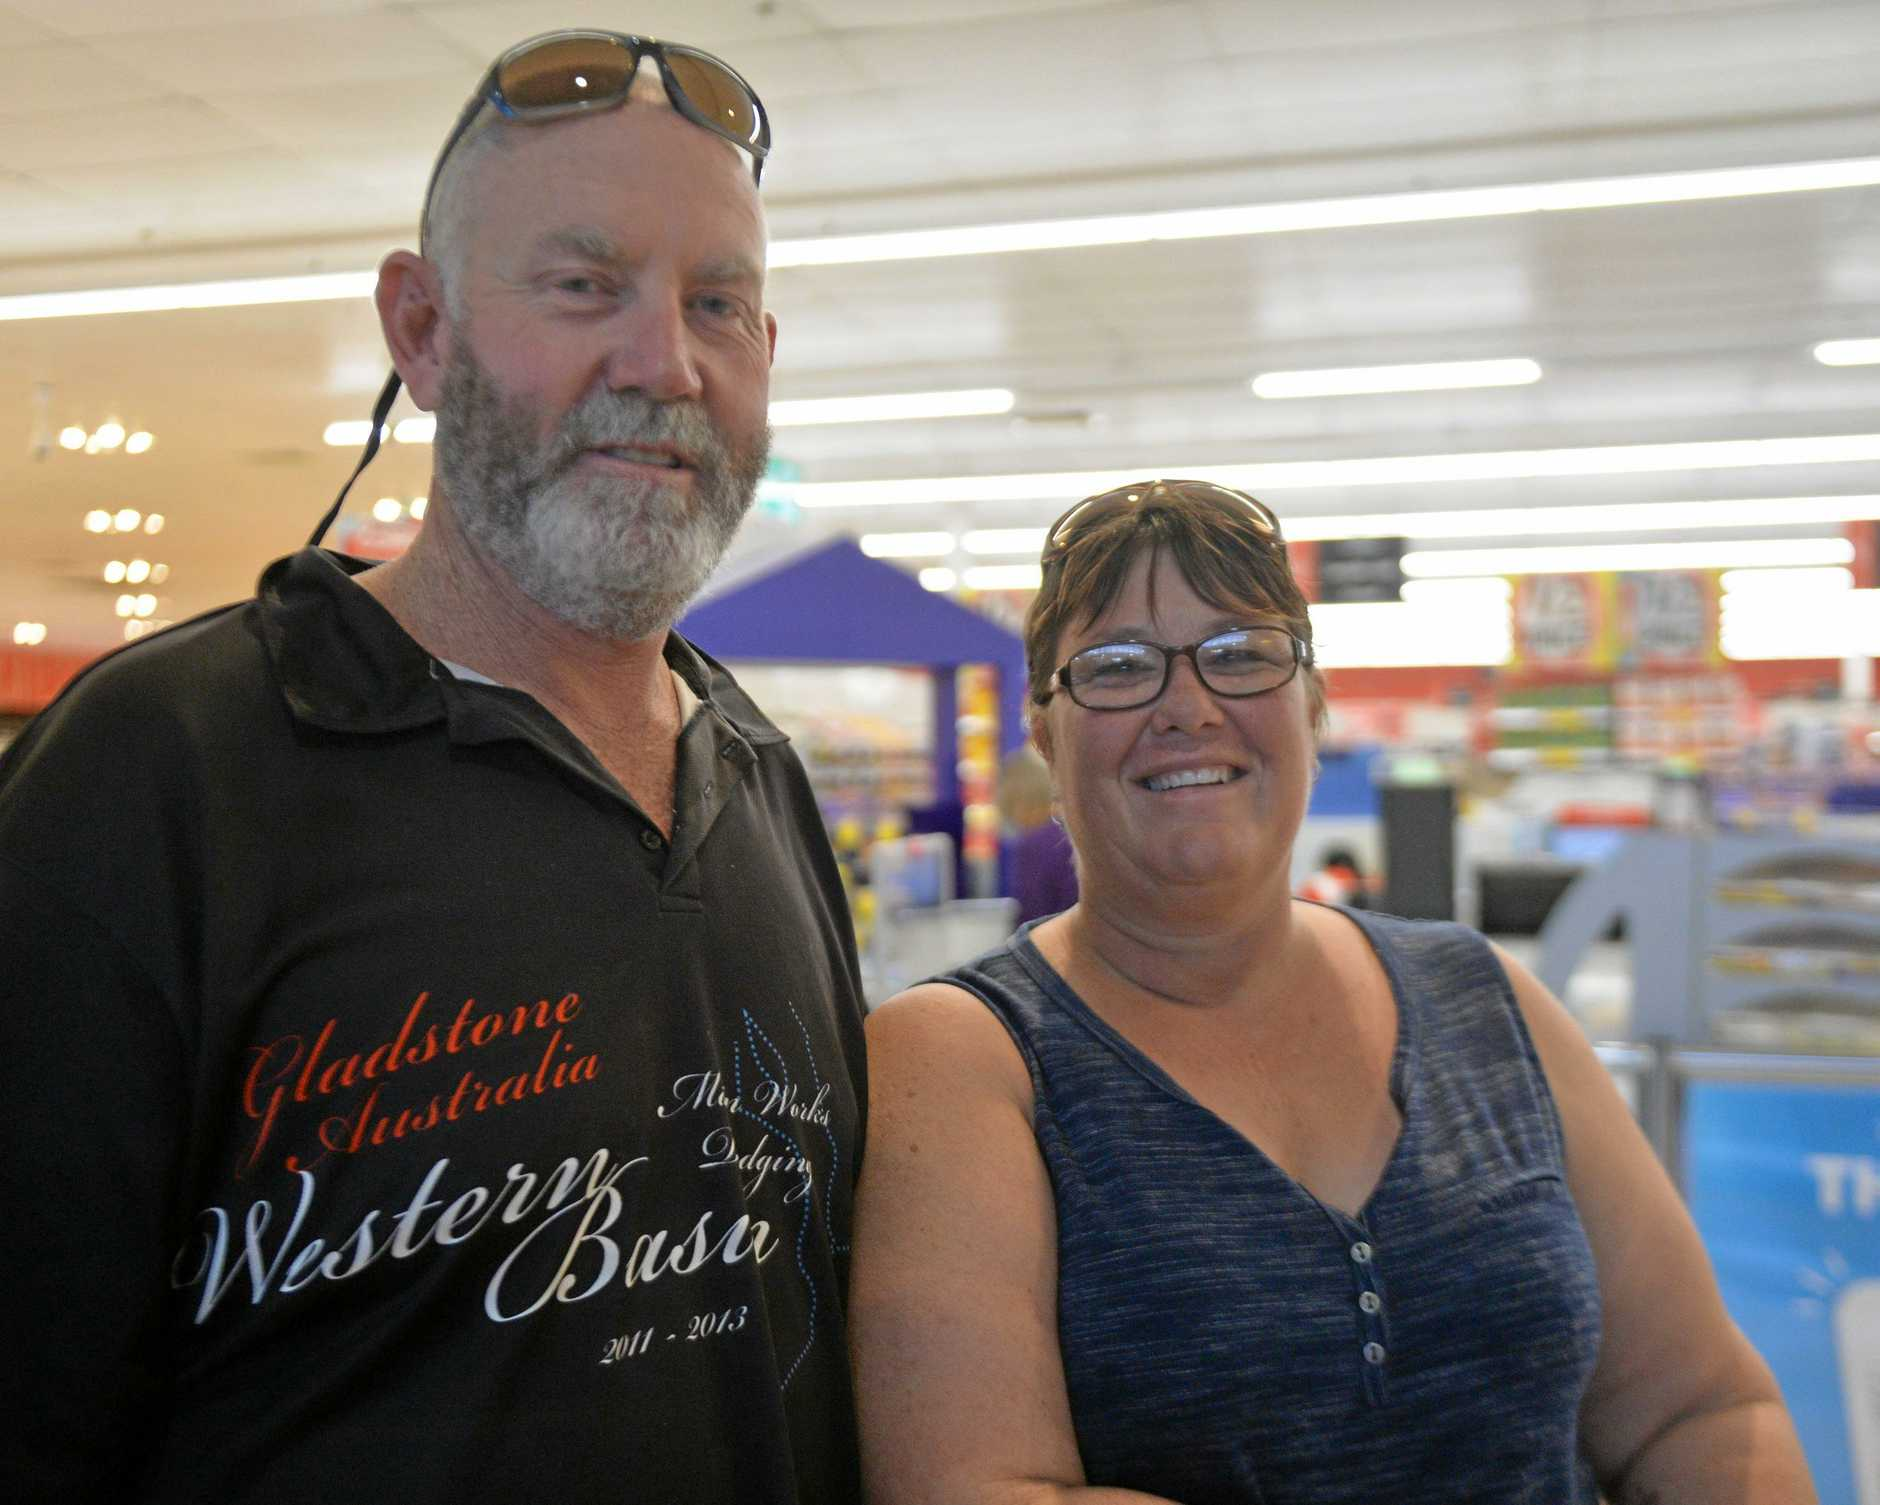 At the Sydney St Coles Ray Smith and Jodie Smith said they choose their grocery stores by convenience. Mr Smith said they usually visit the shop